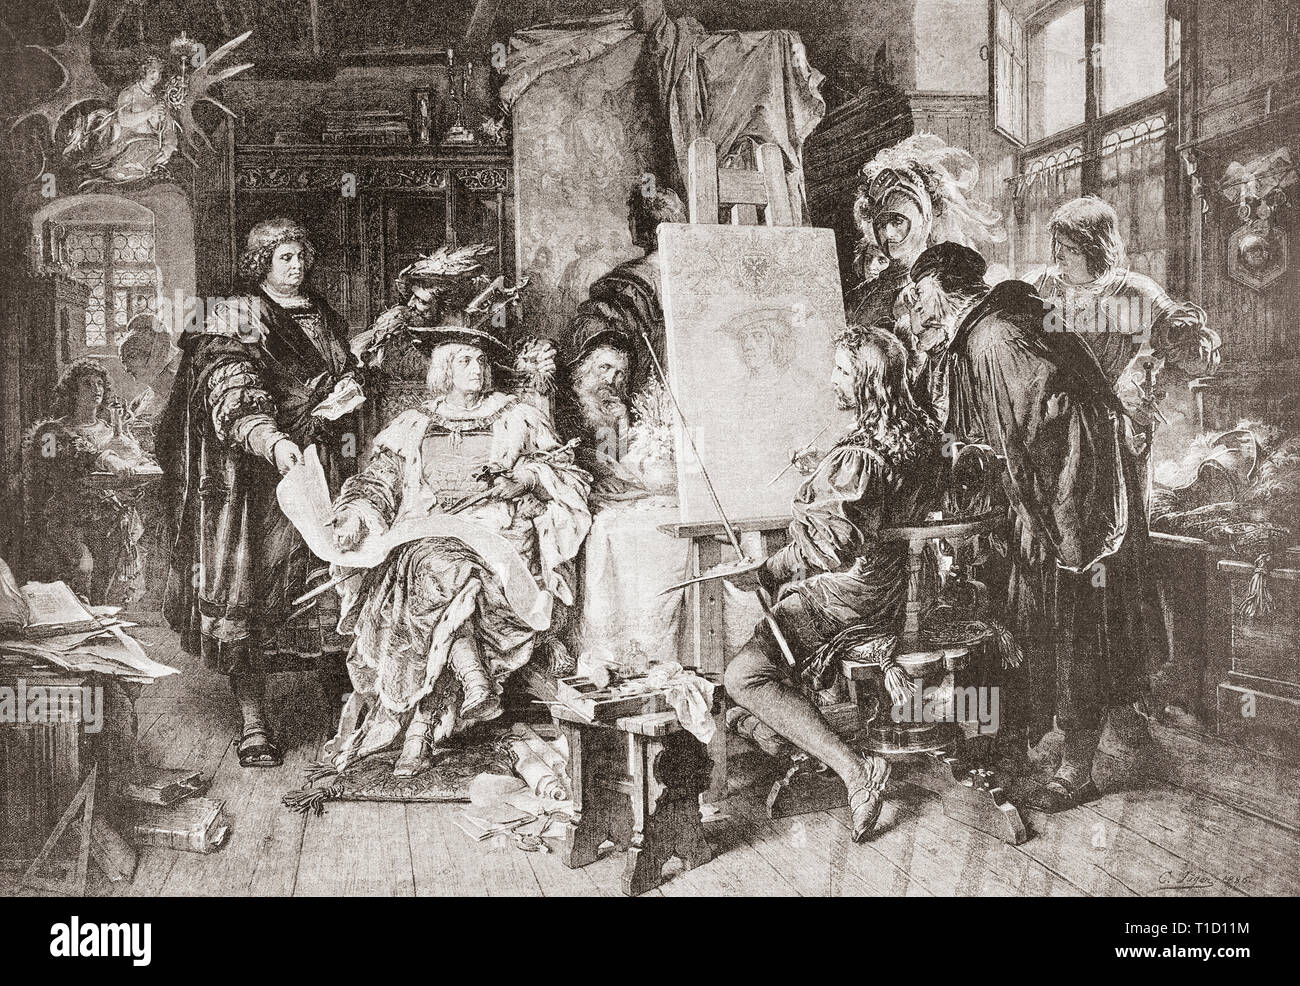 Albrecht Durer painting the portrait of the emperor Maximilian I.  Albrecht Durer, 1471 –1528.  Painter, printmaker, and theorist of the German Renaissance.  Maximilian I, 1459 – 1519.  Holy Roman Emperor.  From Ilustracion Artistica, published 1887. - Stock Image